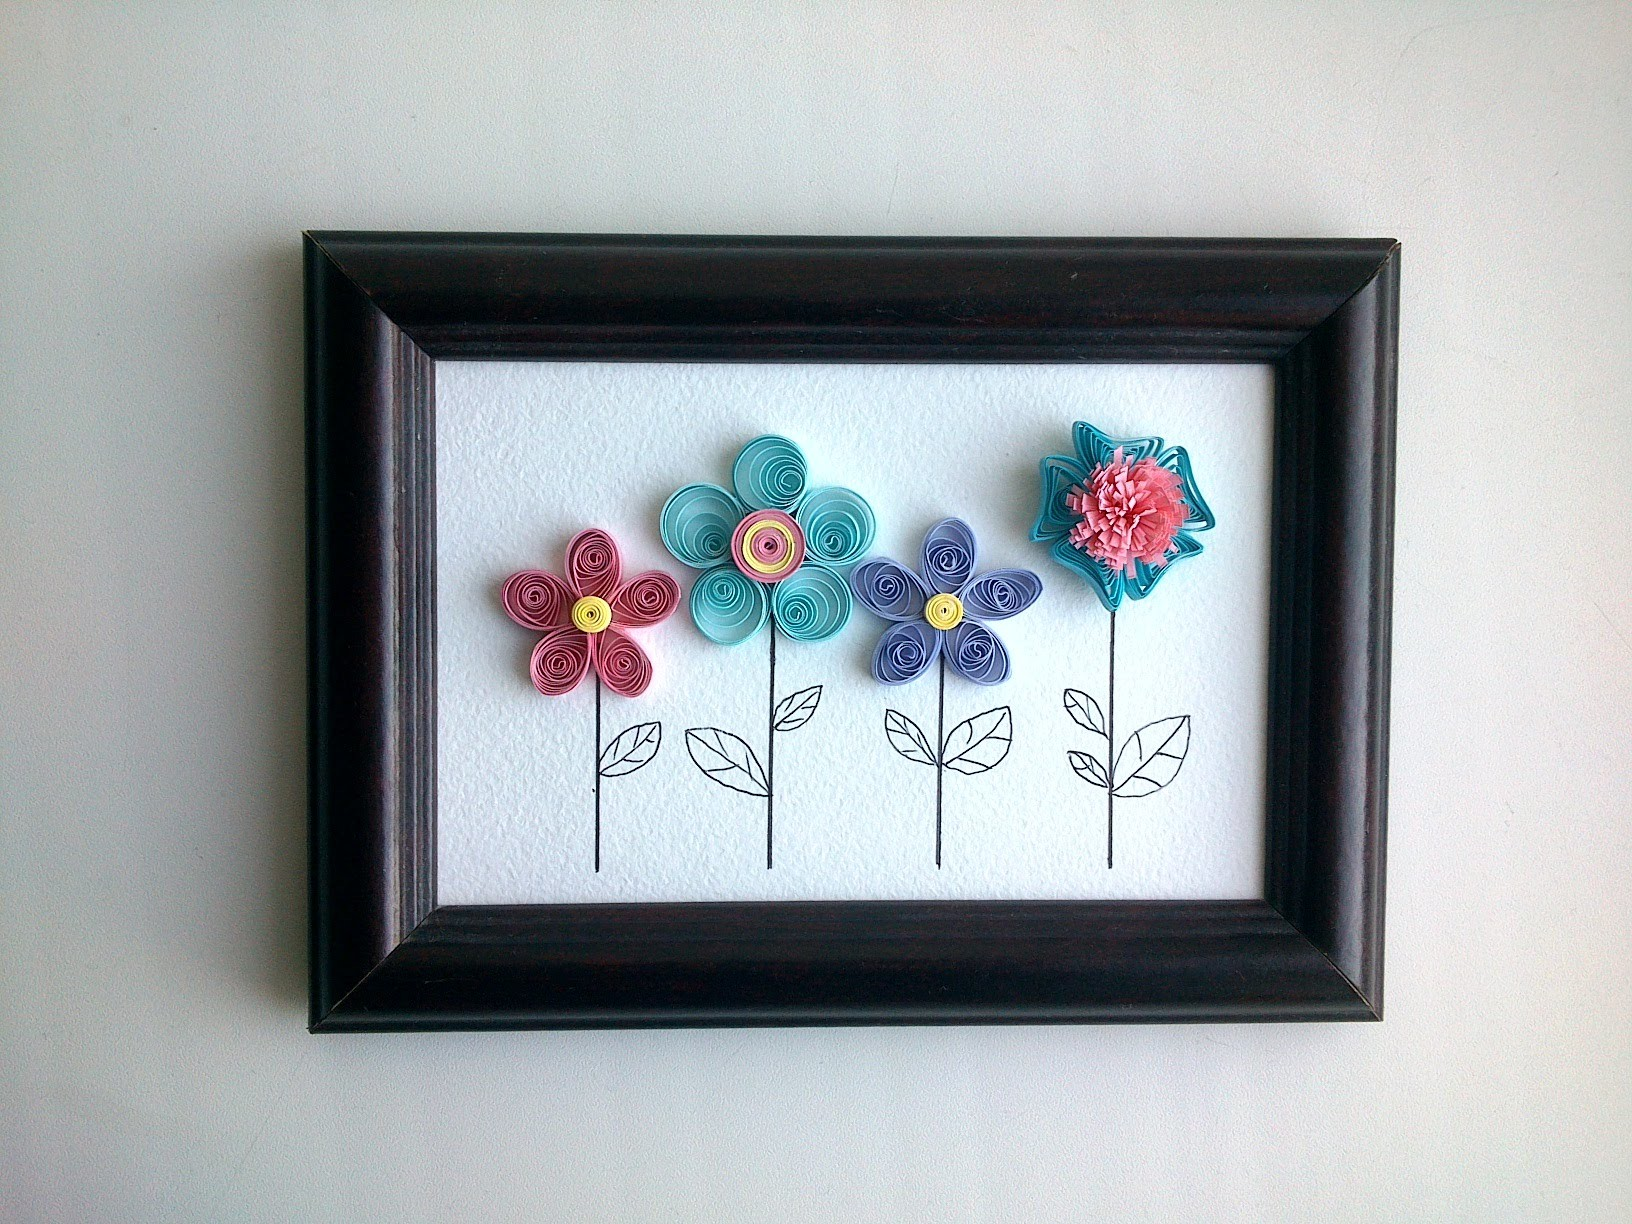 Paper Quilling Design: How to make quilling wall decor with a quilling flowers .